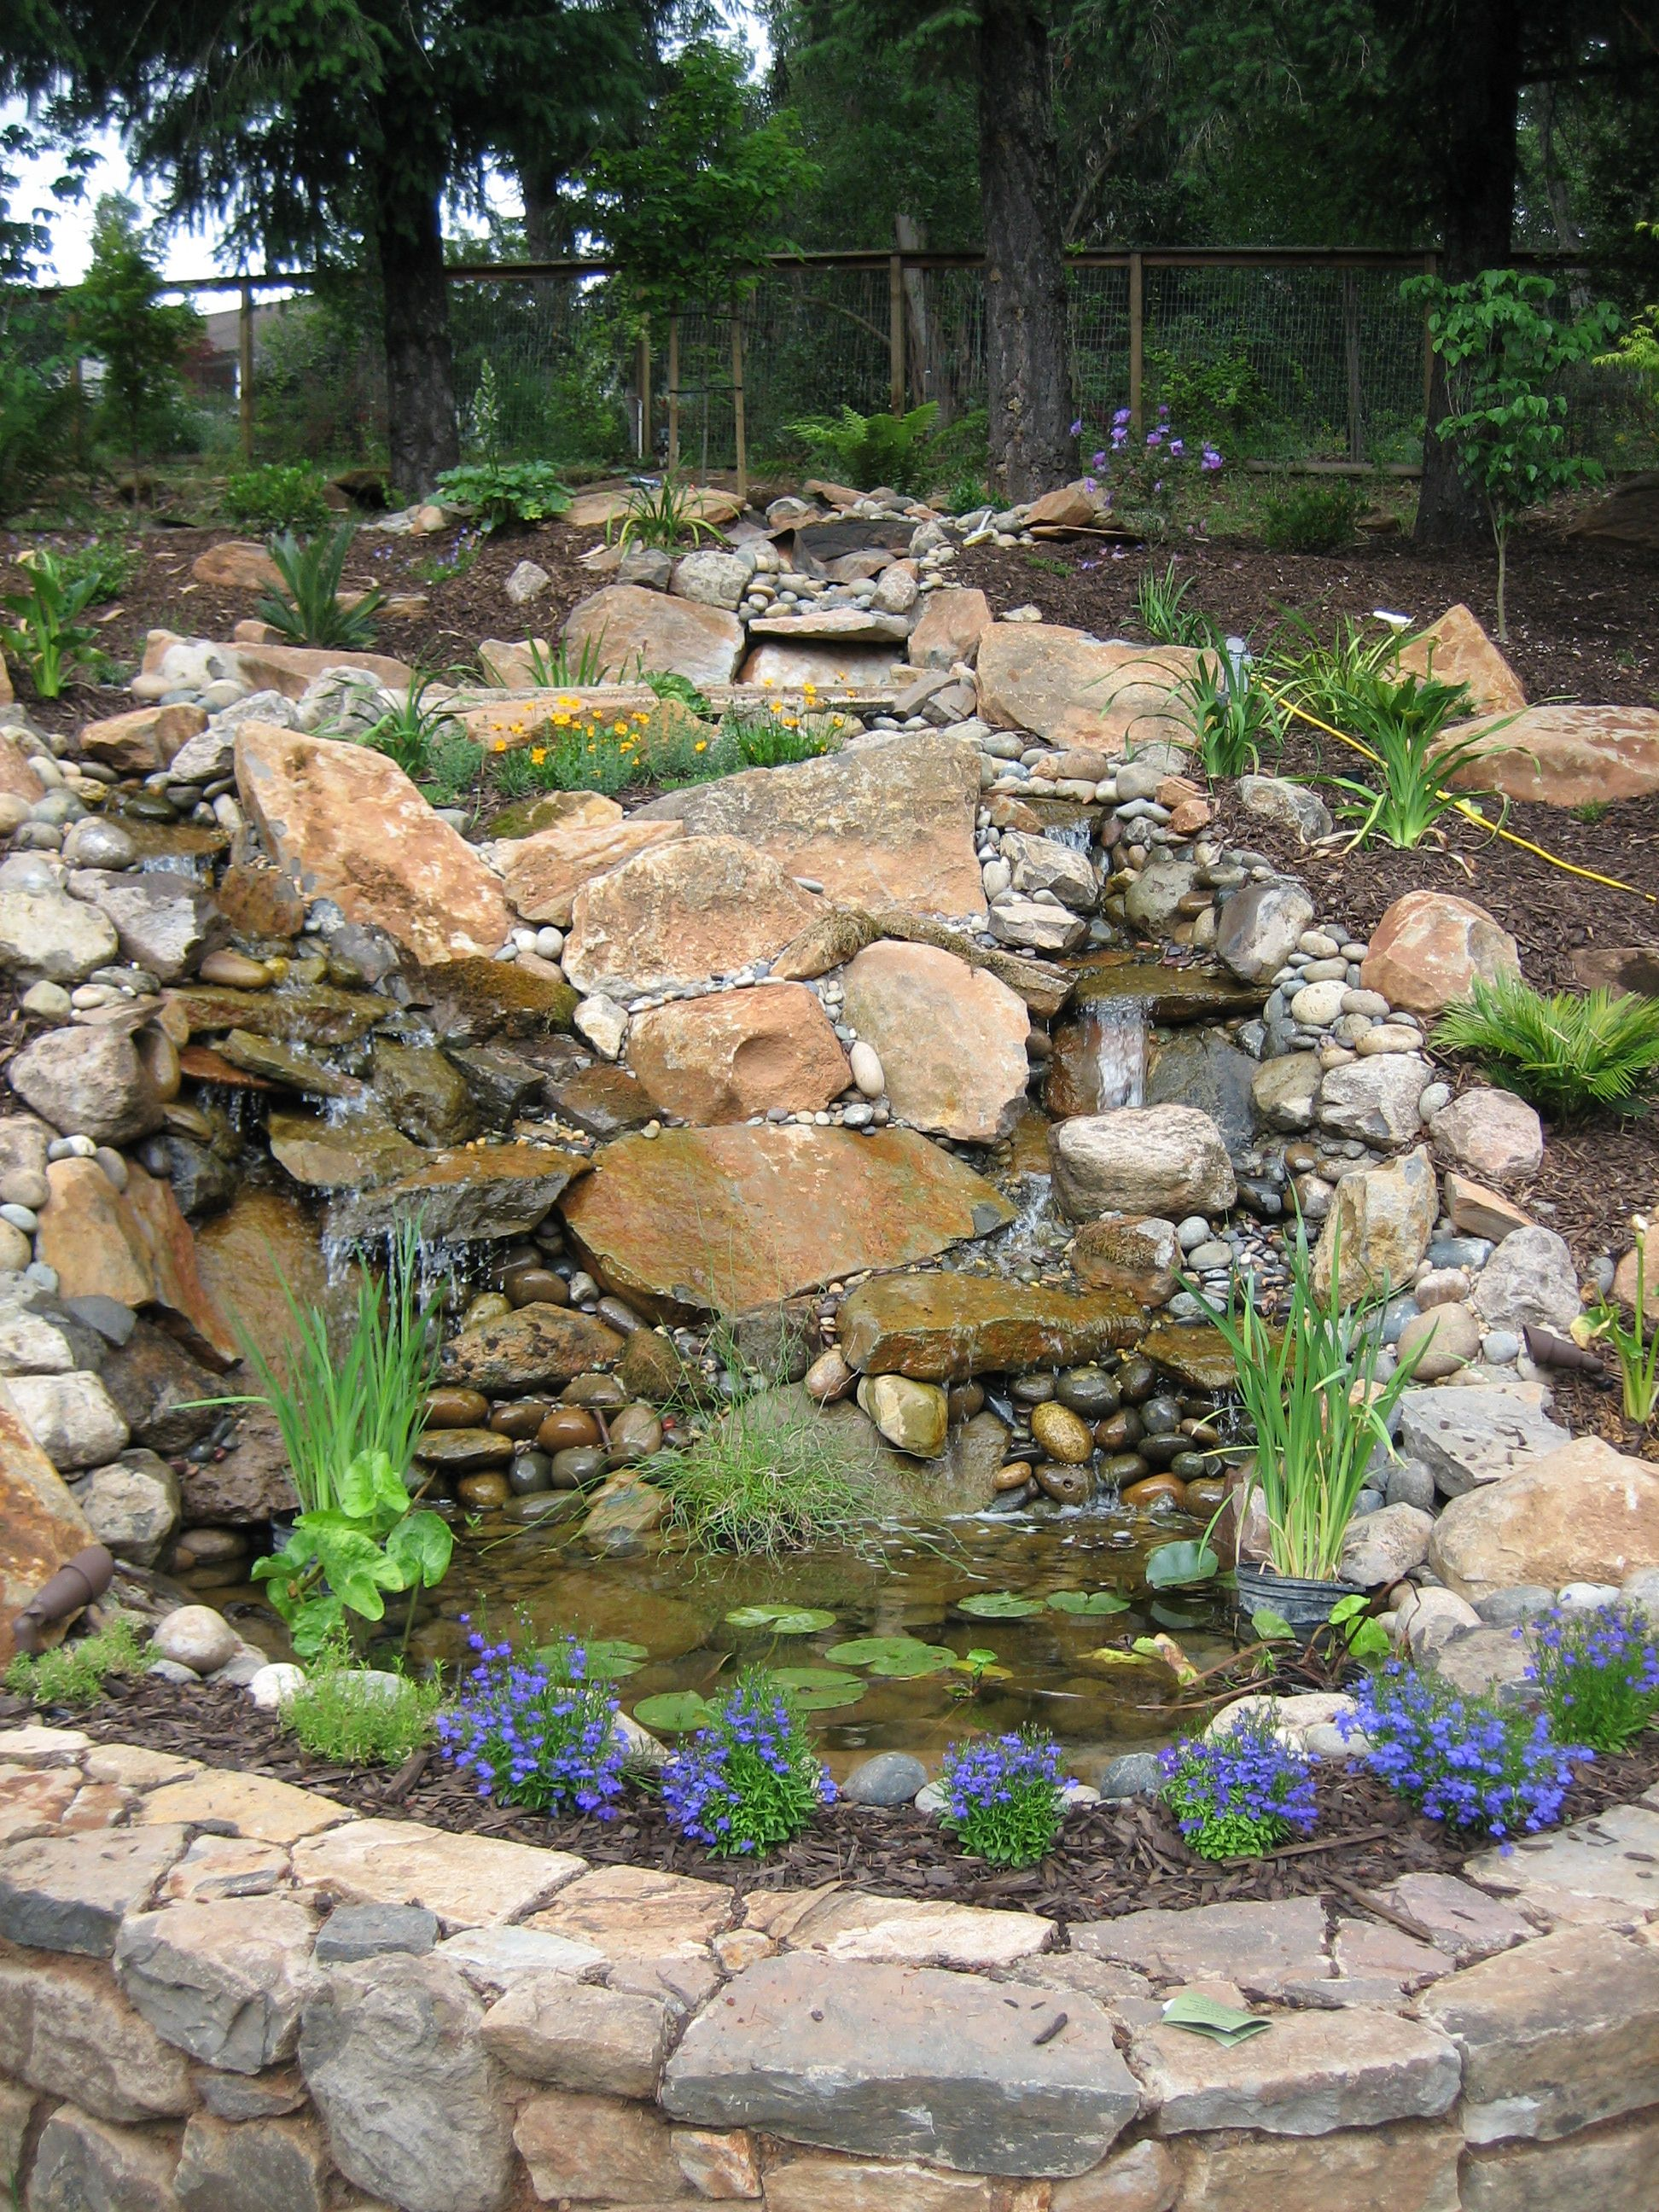 Backyard waterfall made from river rock and slate - very ... on Rock Garden Waterfall Ideas id=68107